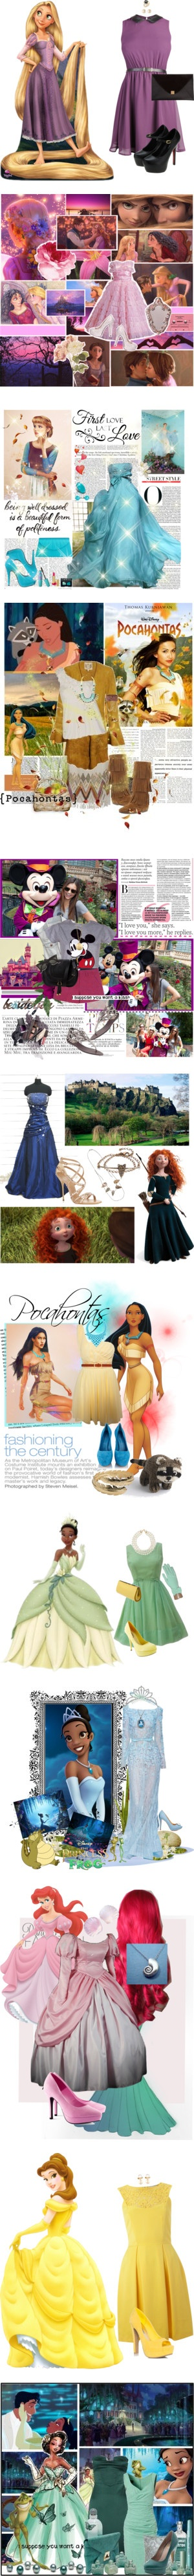 """""""Cute Disney Prinsess Sets*"""" by buttercup-indiapop ❤ liked on Polyvore"""